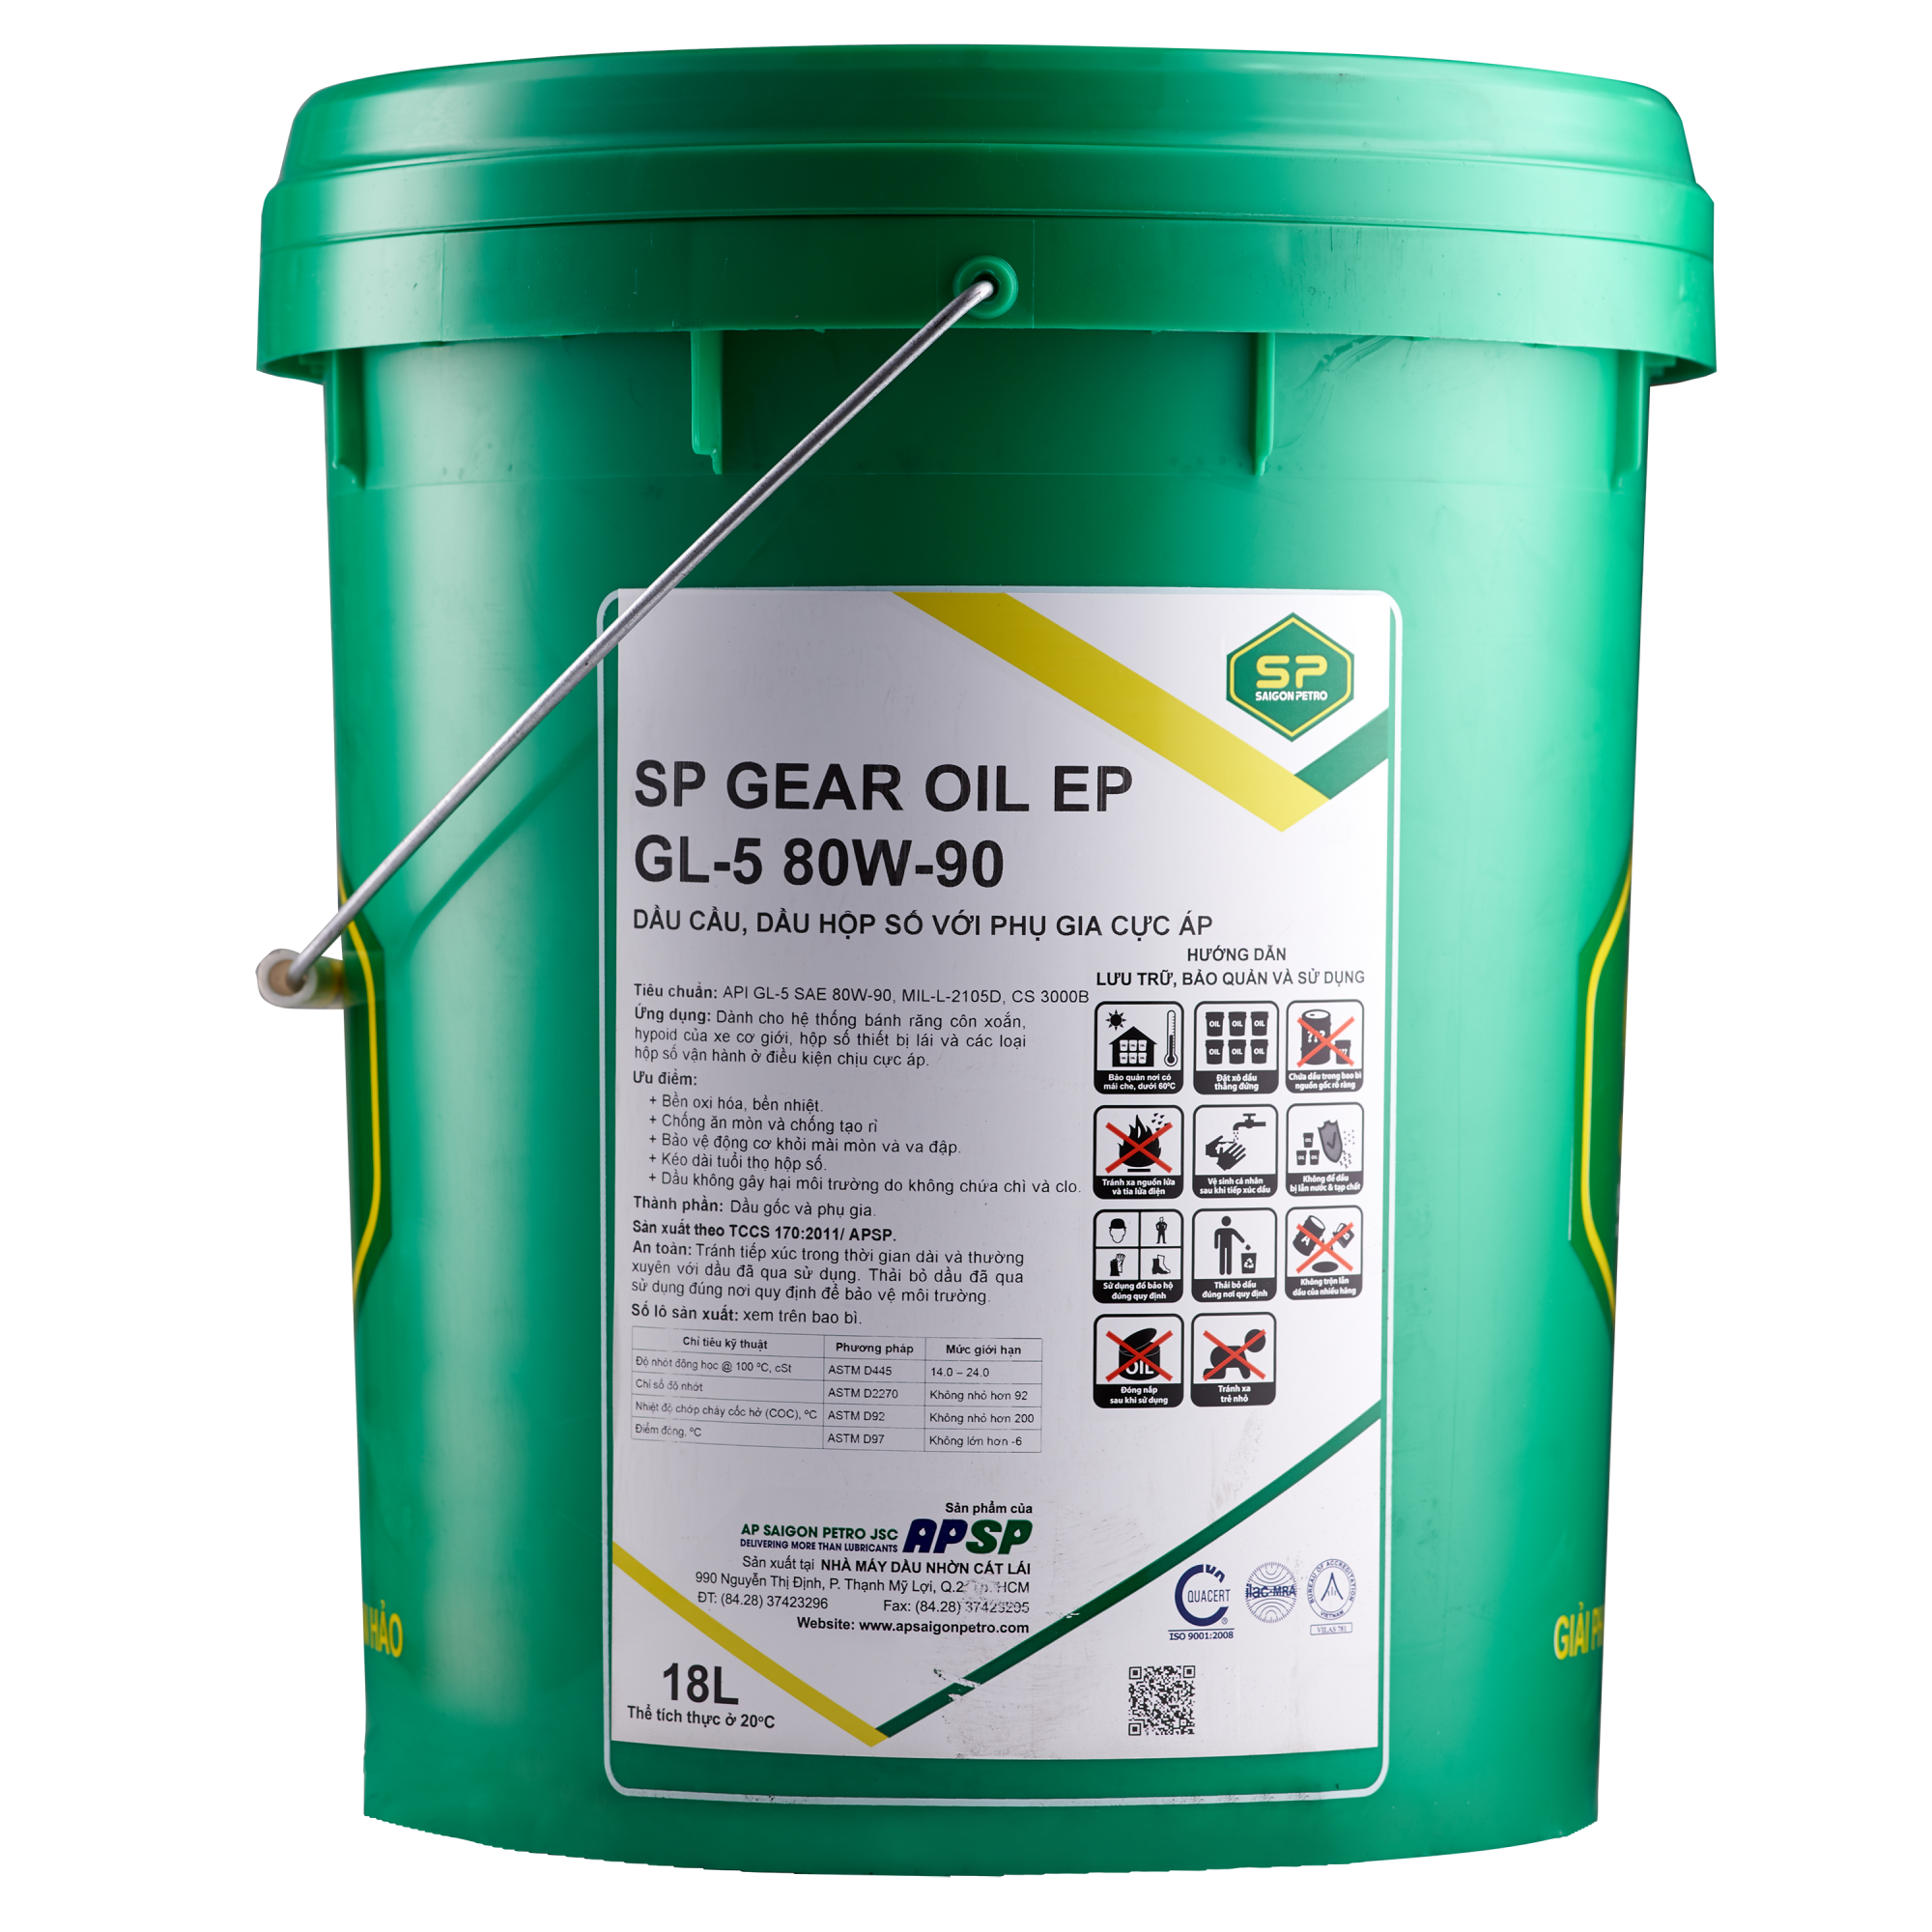 SP GEAR OIL EP GL-5 80W-90